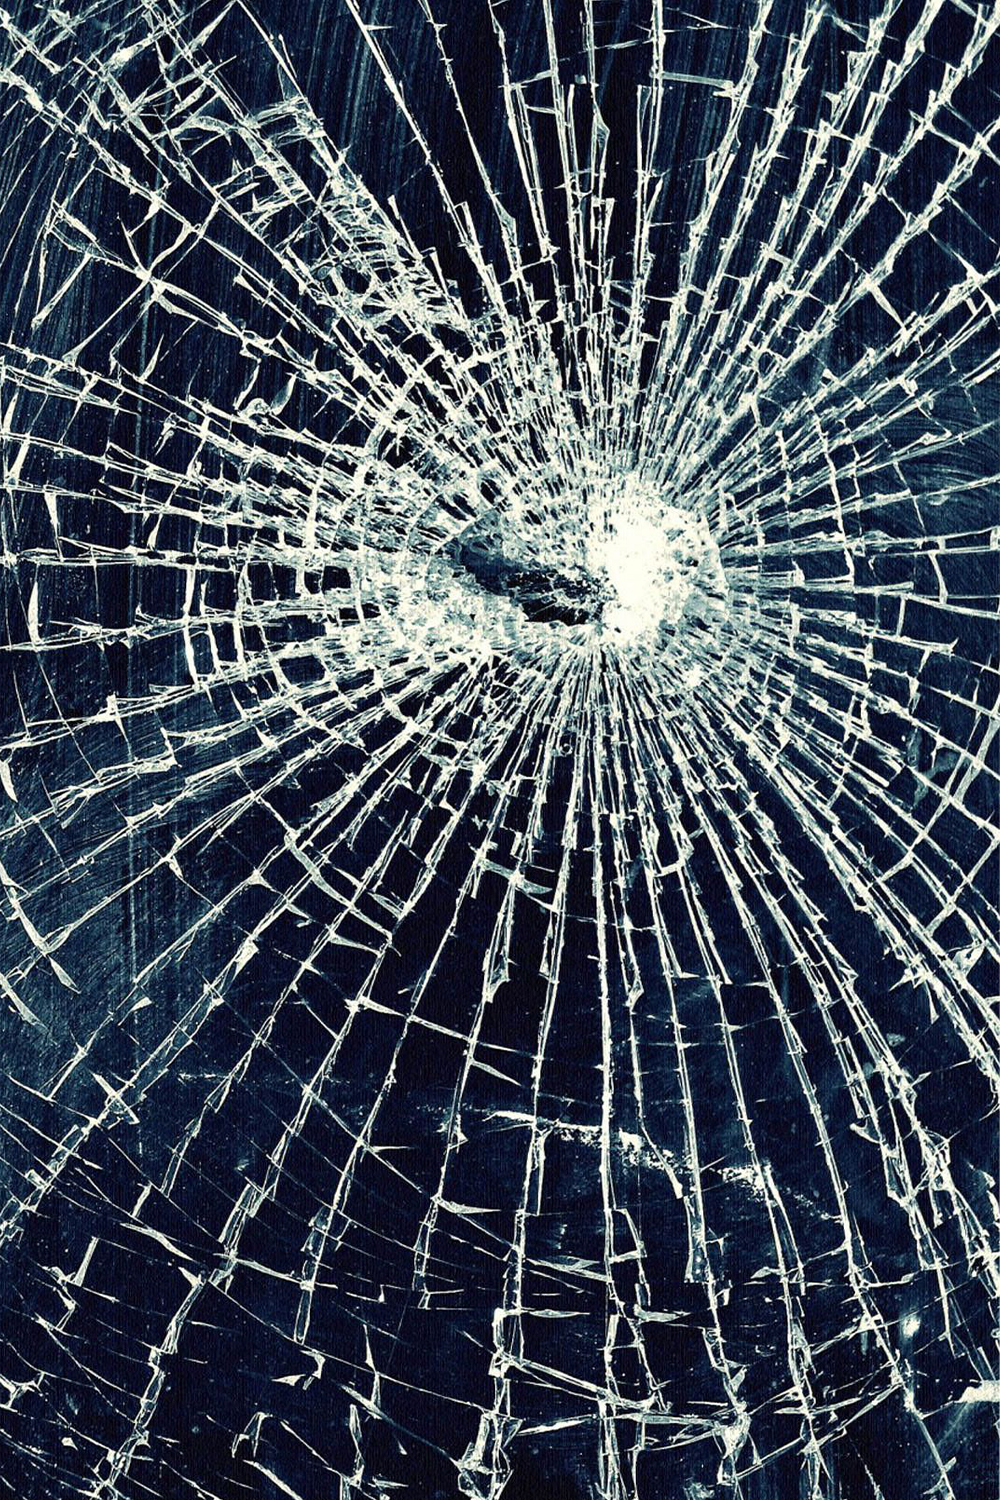 Wallpapers That Make Your Screen Look Cracked In 2020 Broken Screen Wallpaper Screen Wallpaper Hd Black Iphone Cases